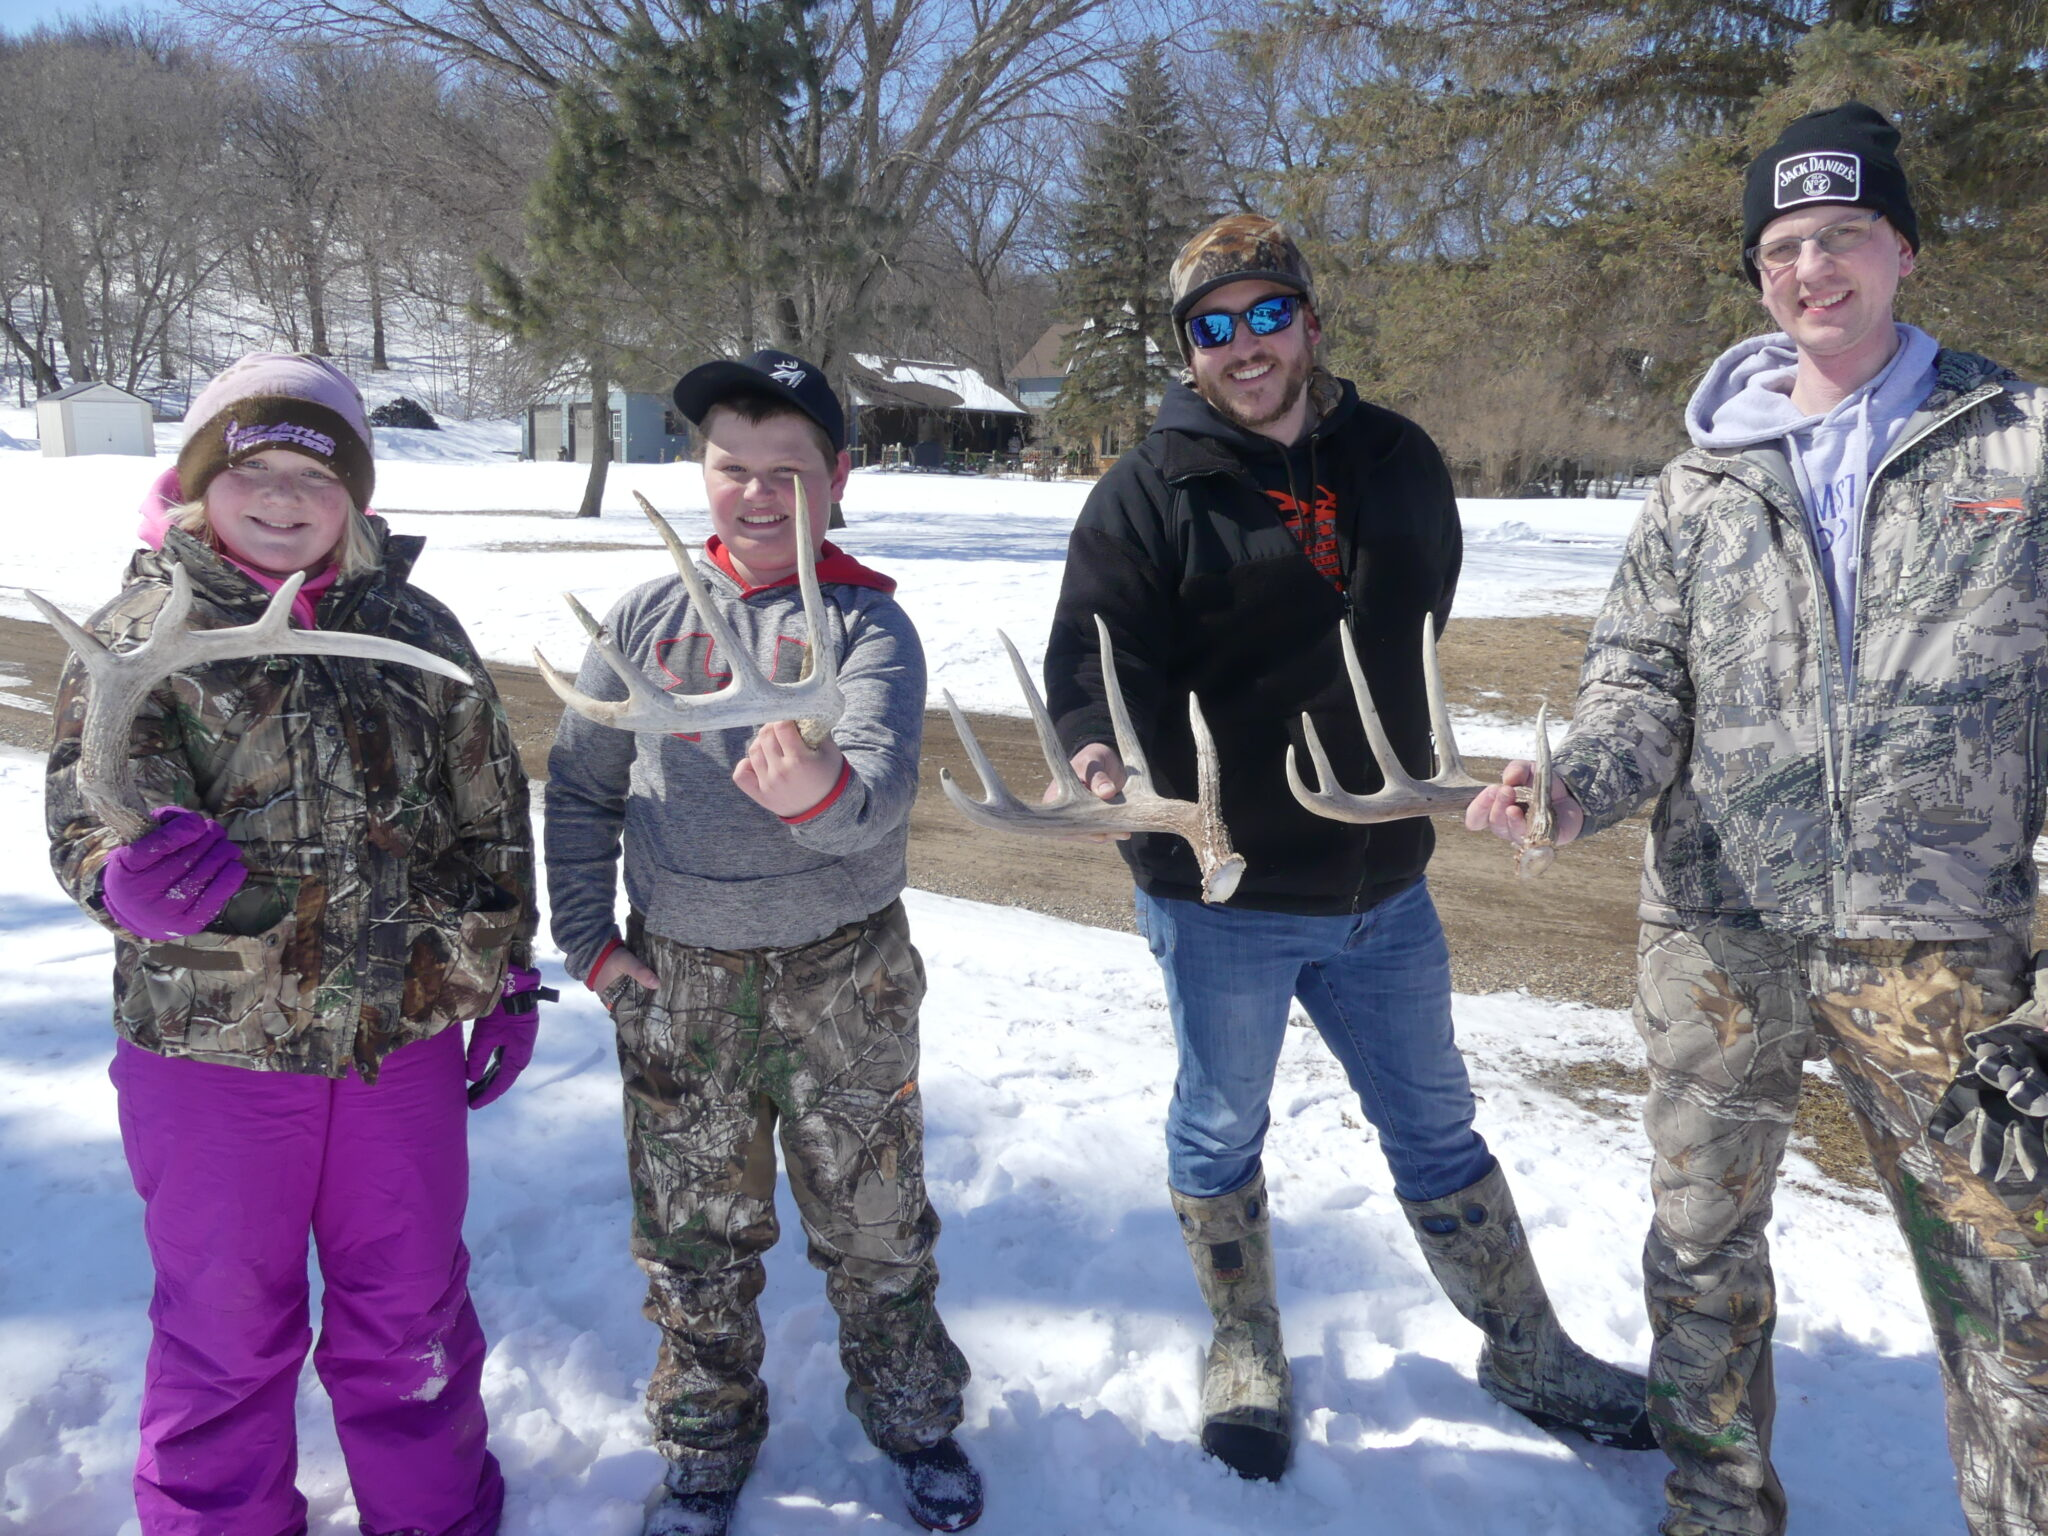 Sheds Hunting Group